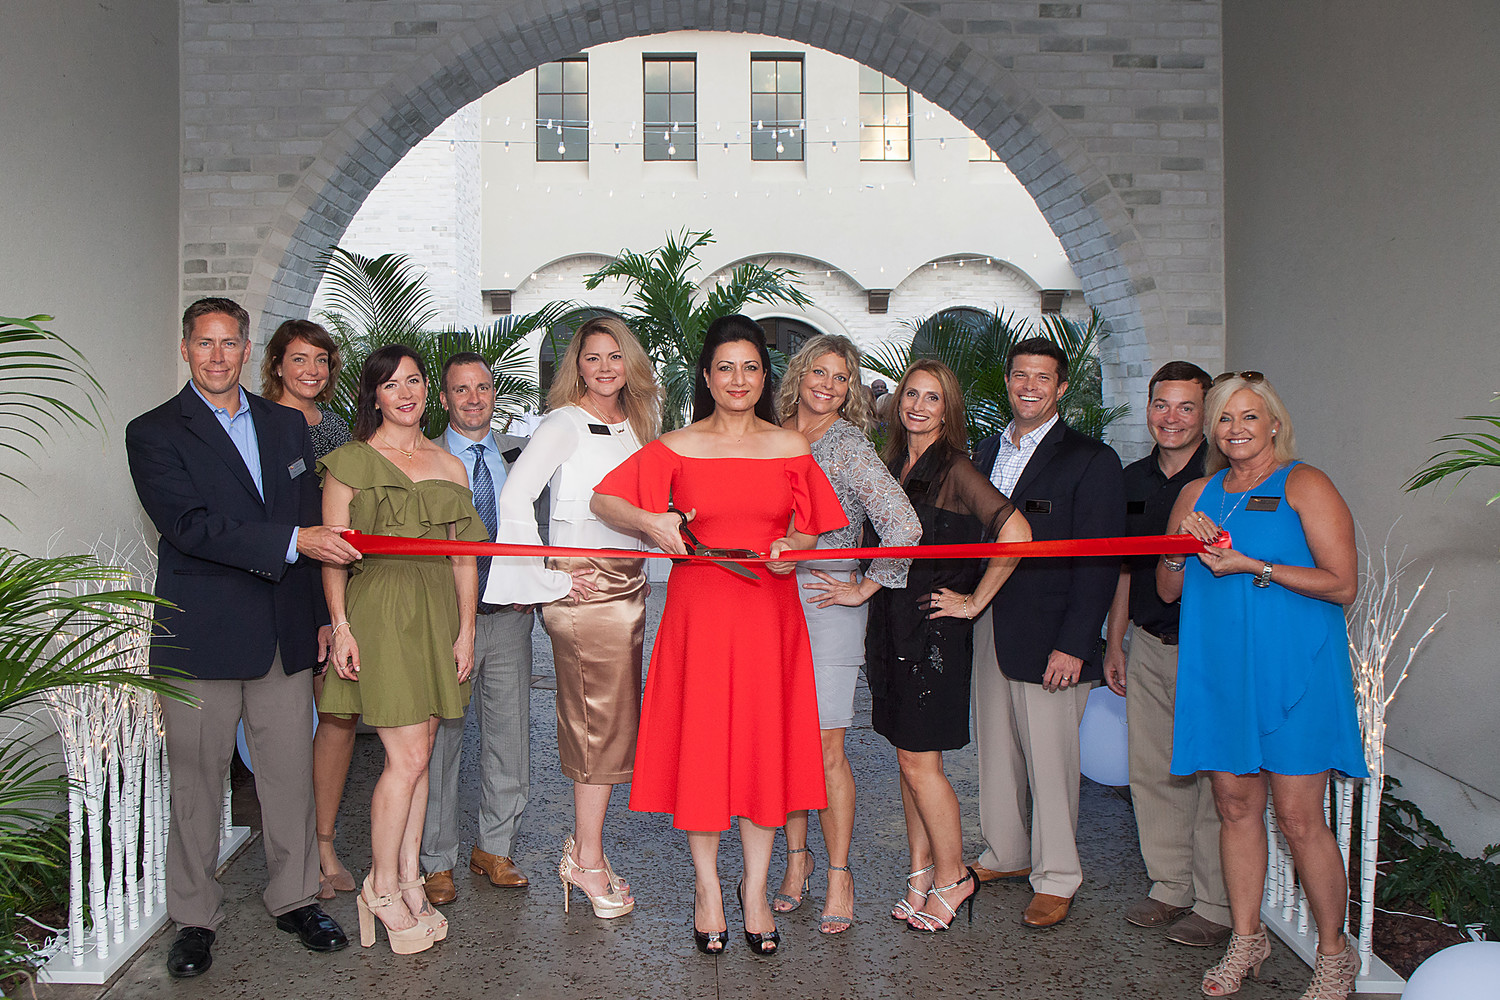 Representatives from The Pineapple Corporation and the St. Johns County Chamber of Commerce Ponte Vedra Beach Division celebrate the opening of the new model homes in the Vista at Twenty Mile with a ribbon cutting ceremony.